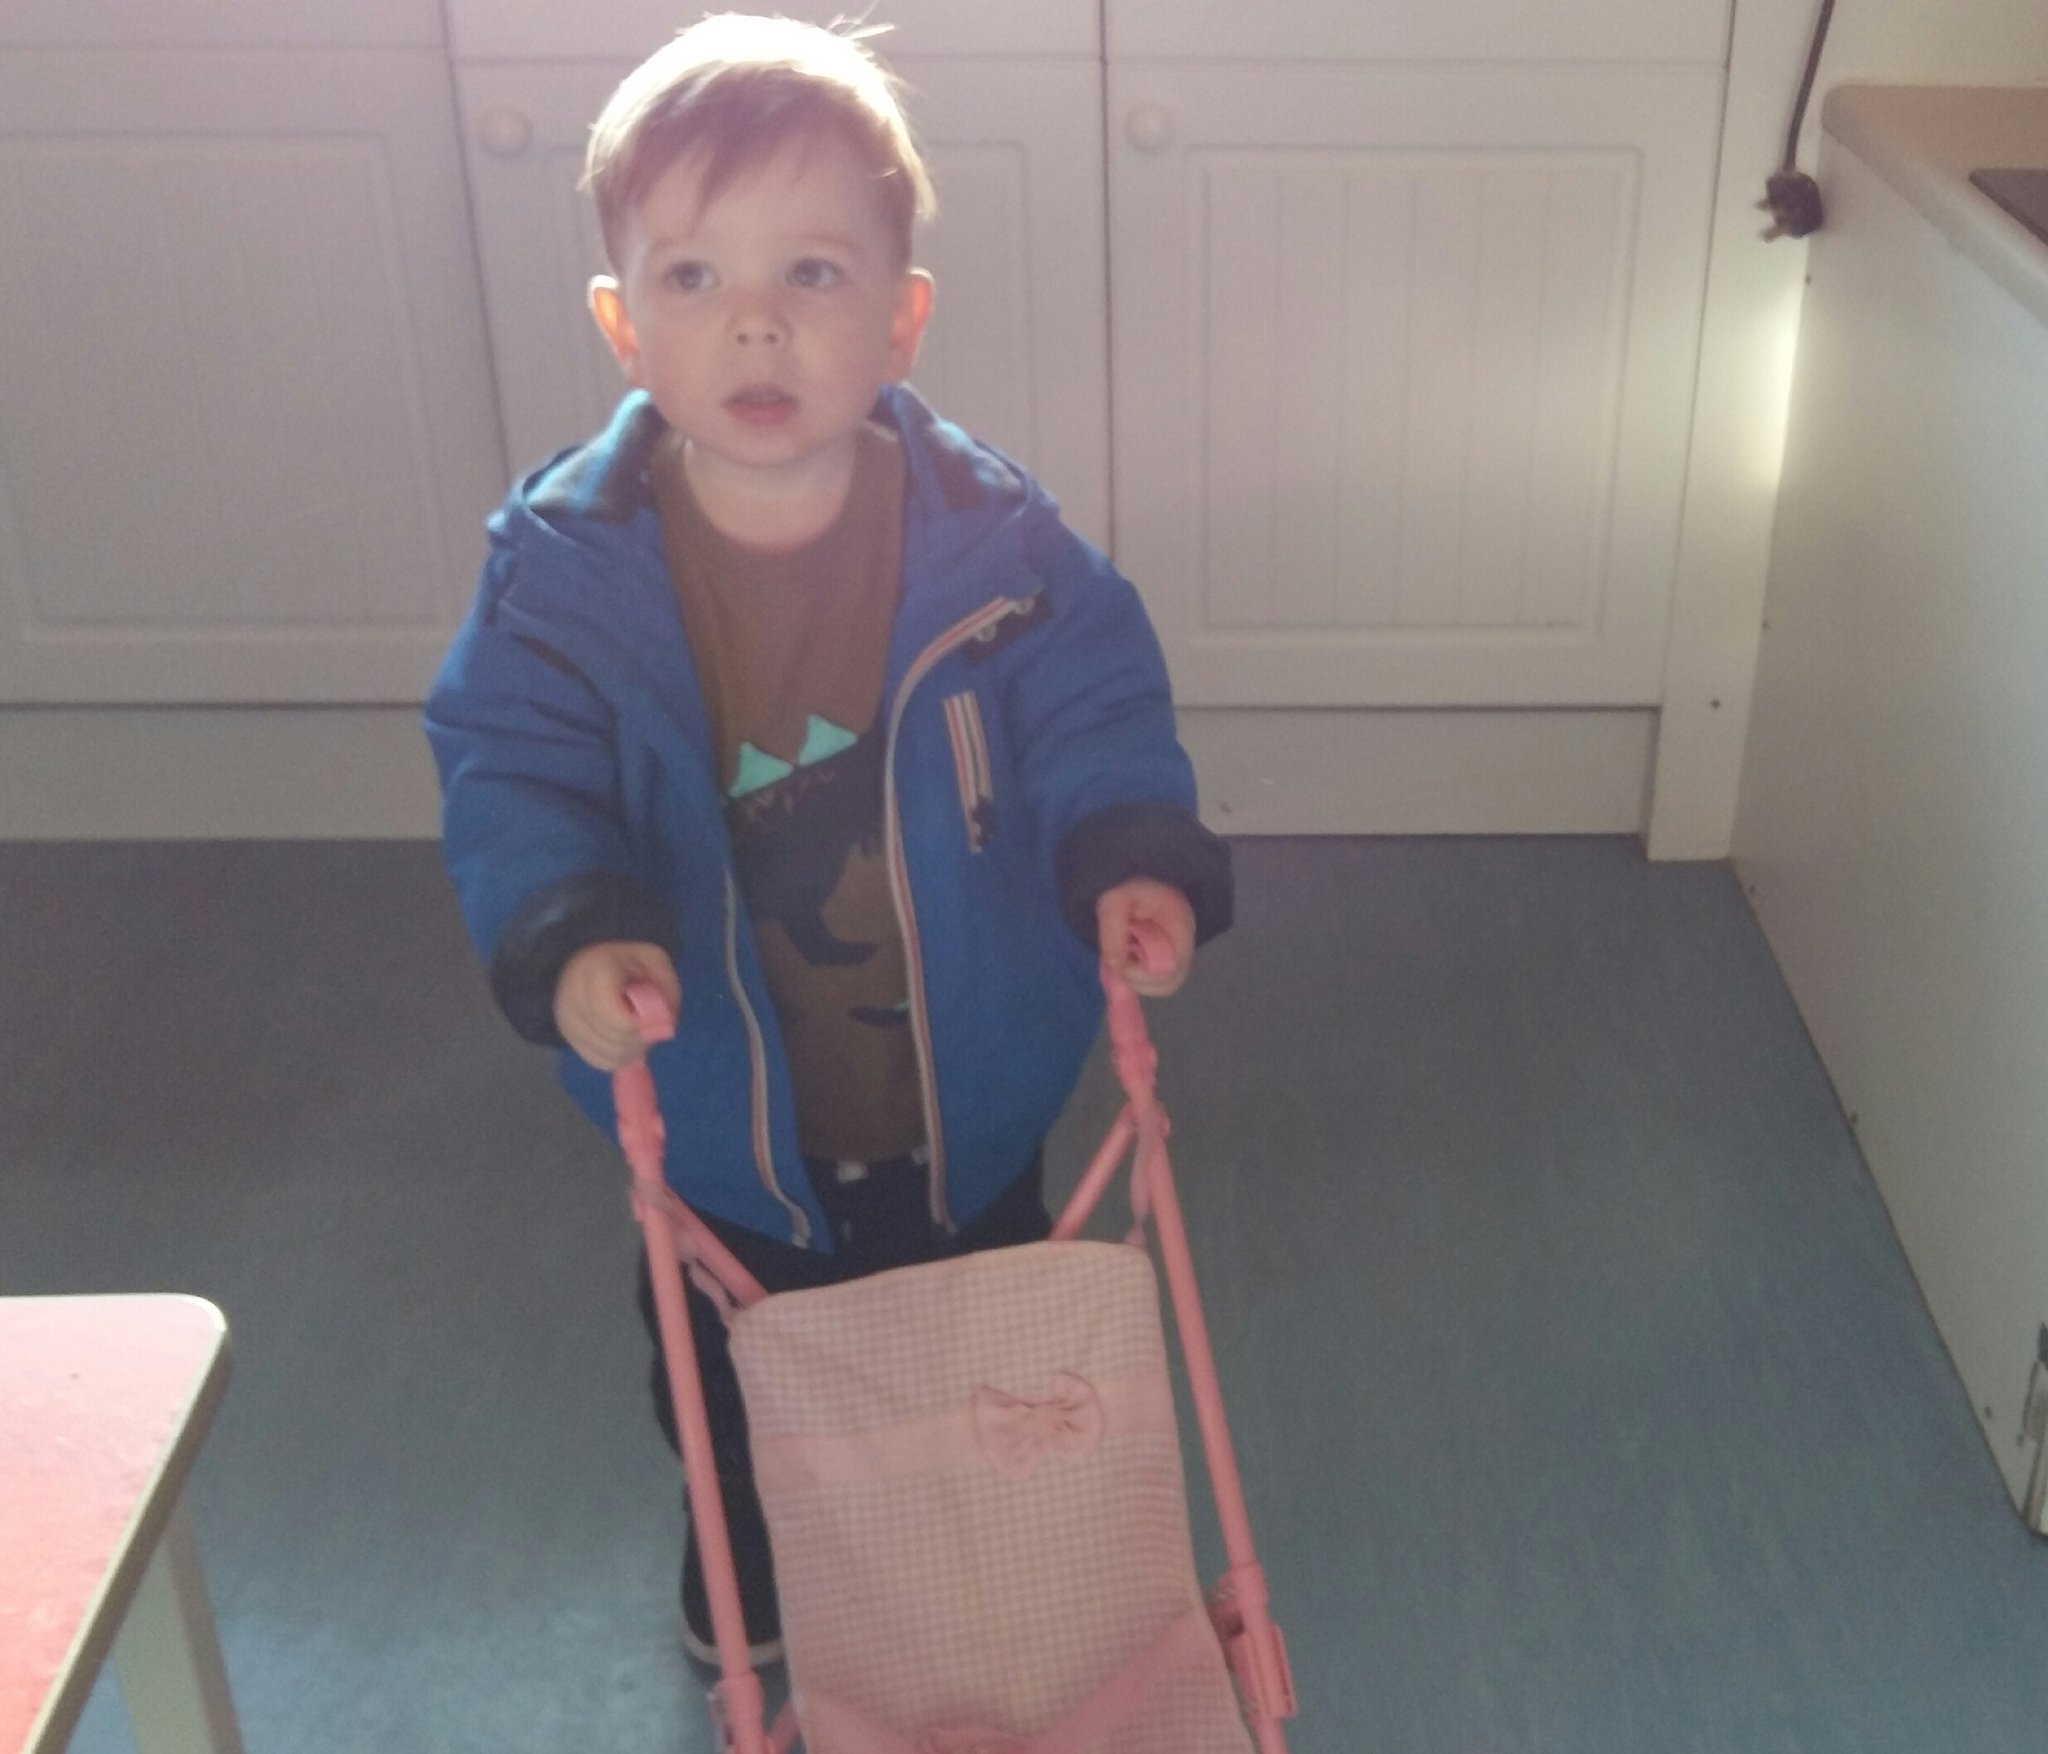 Thanks to the dads and kids who came to our Craigmillar playgroup today...Boys love buggies too! https://t.co/mzhIJac18m